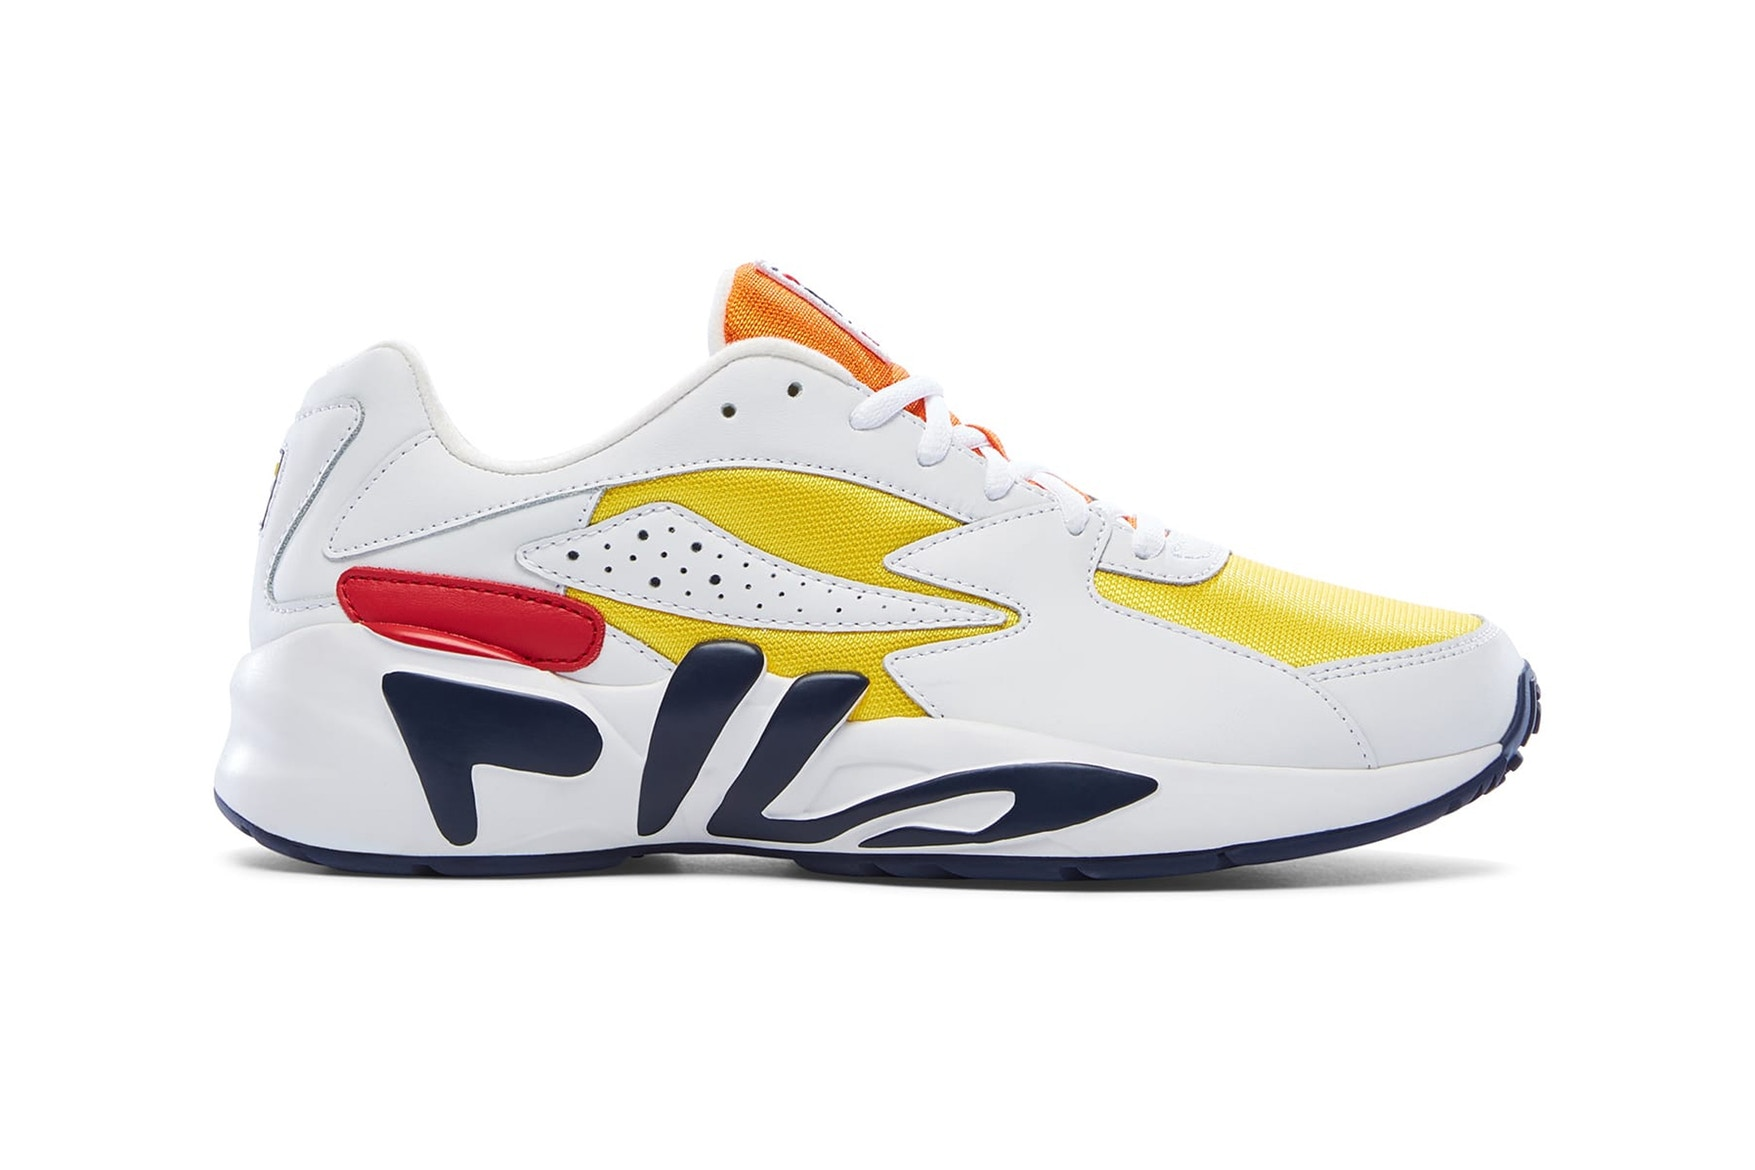 fila-revives-the-classic-mindblower-with-over-40-limited-edition-collaborations-39